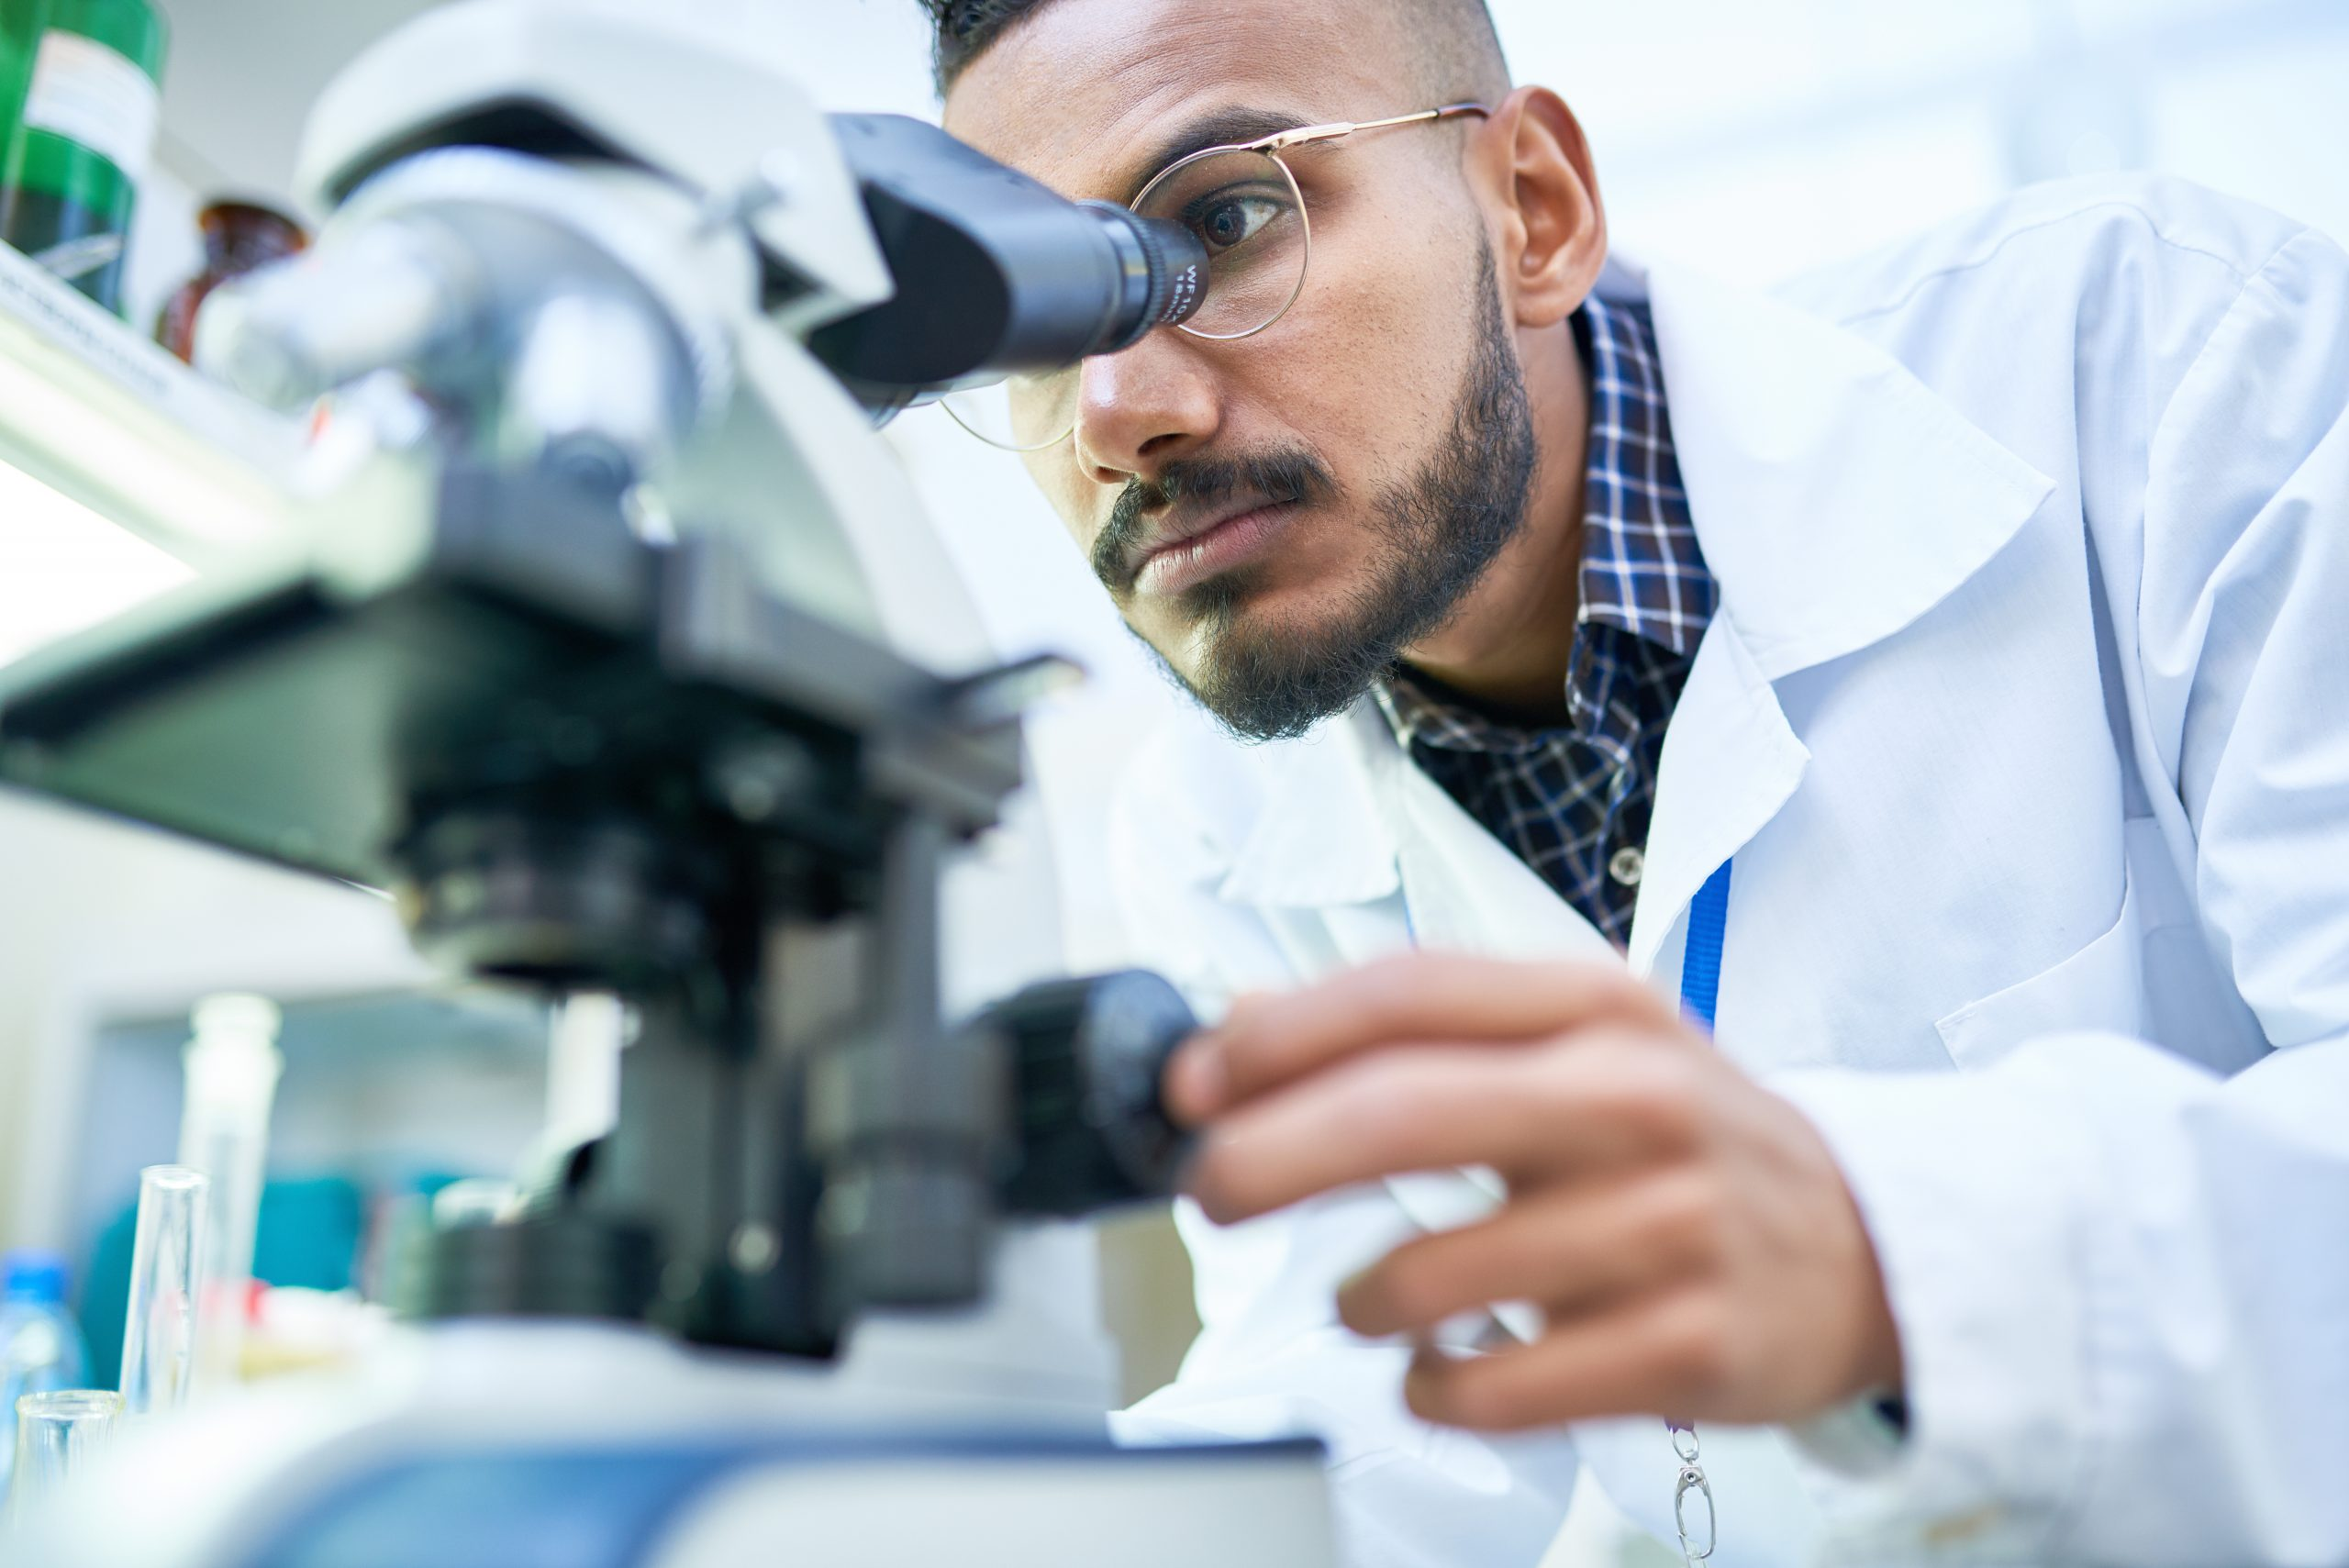 Young male scientist looking in microscope while working on medical research in a laboratory